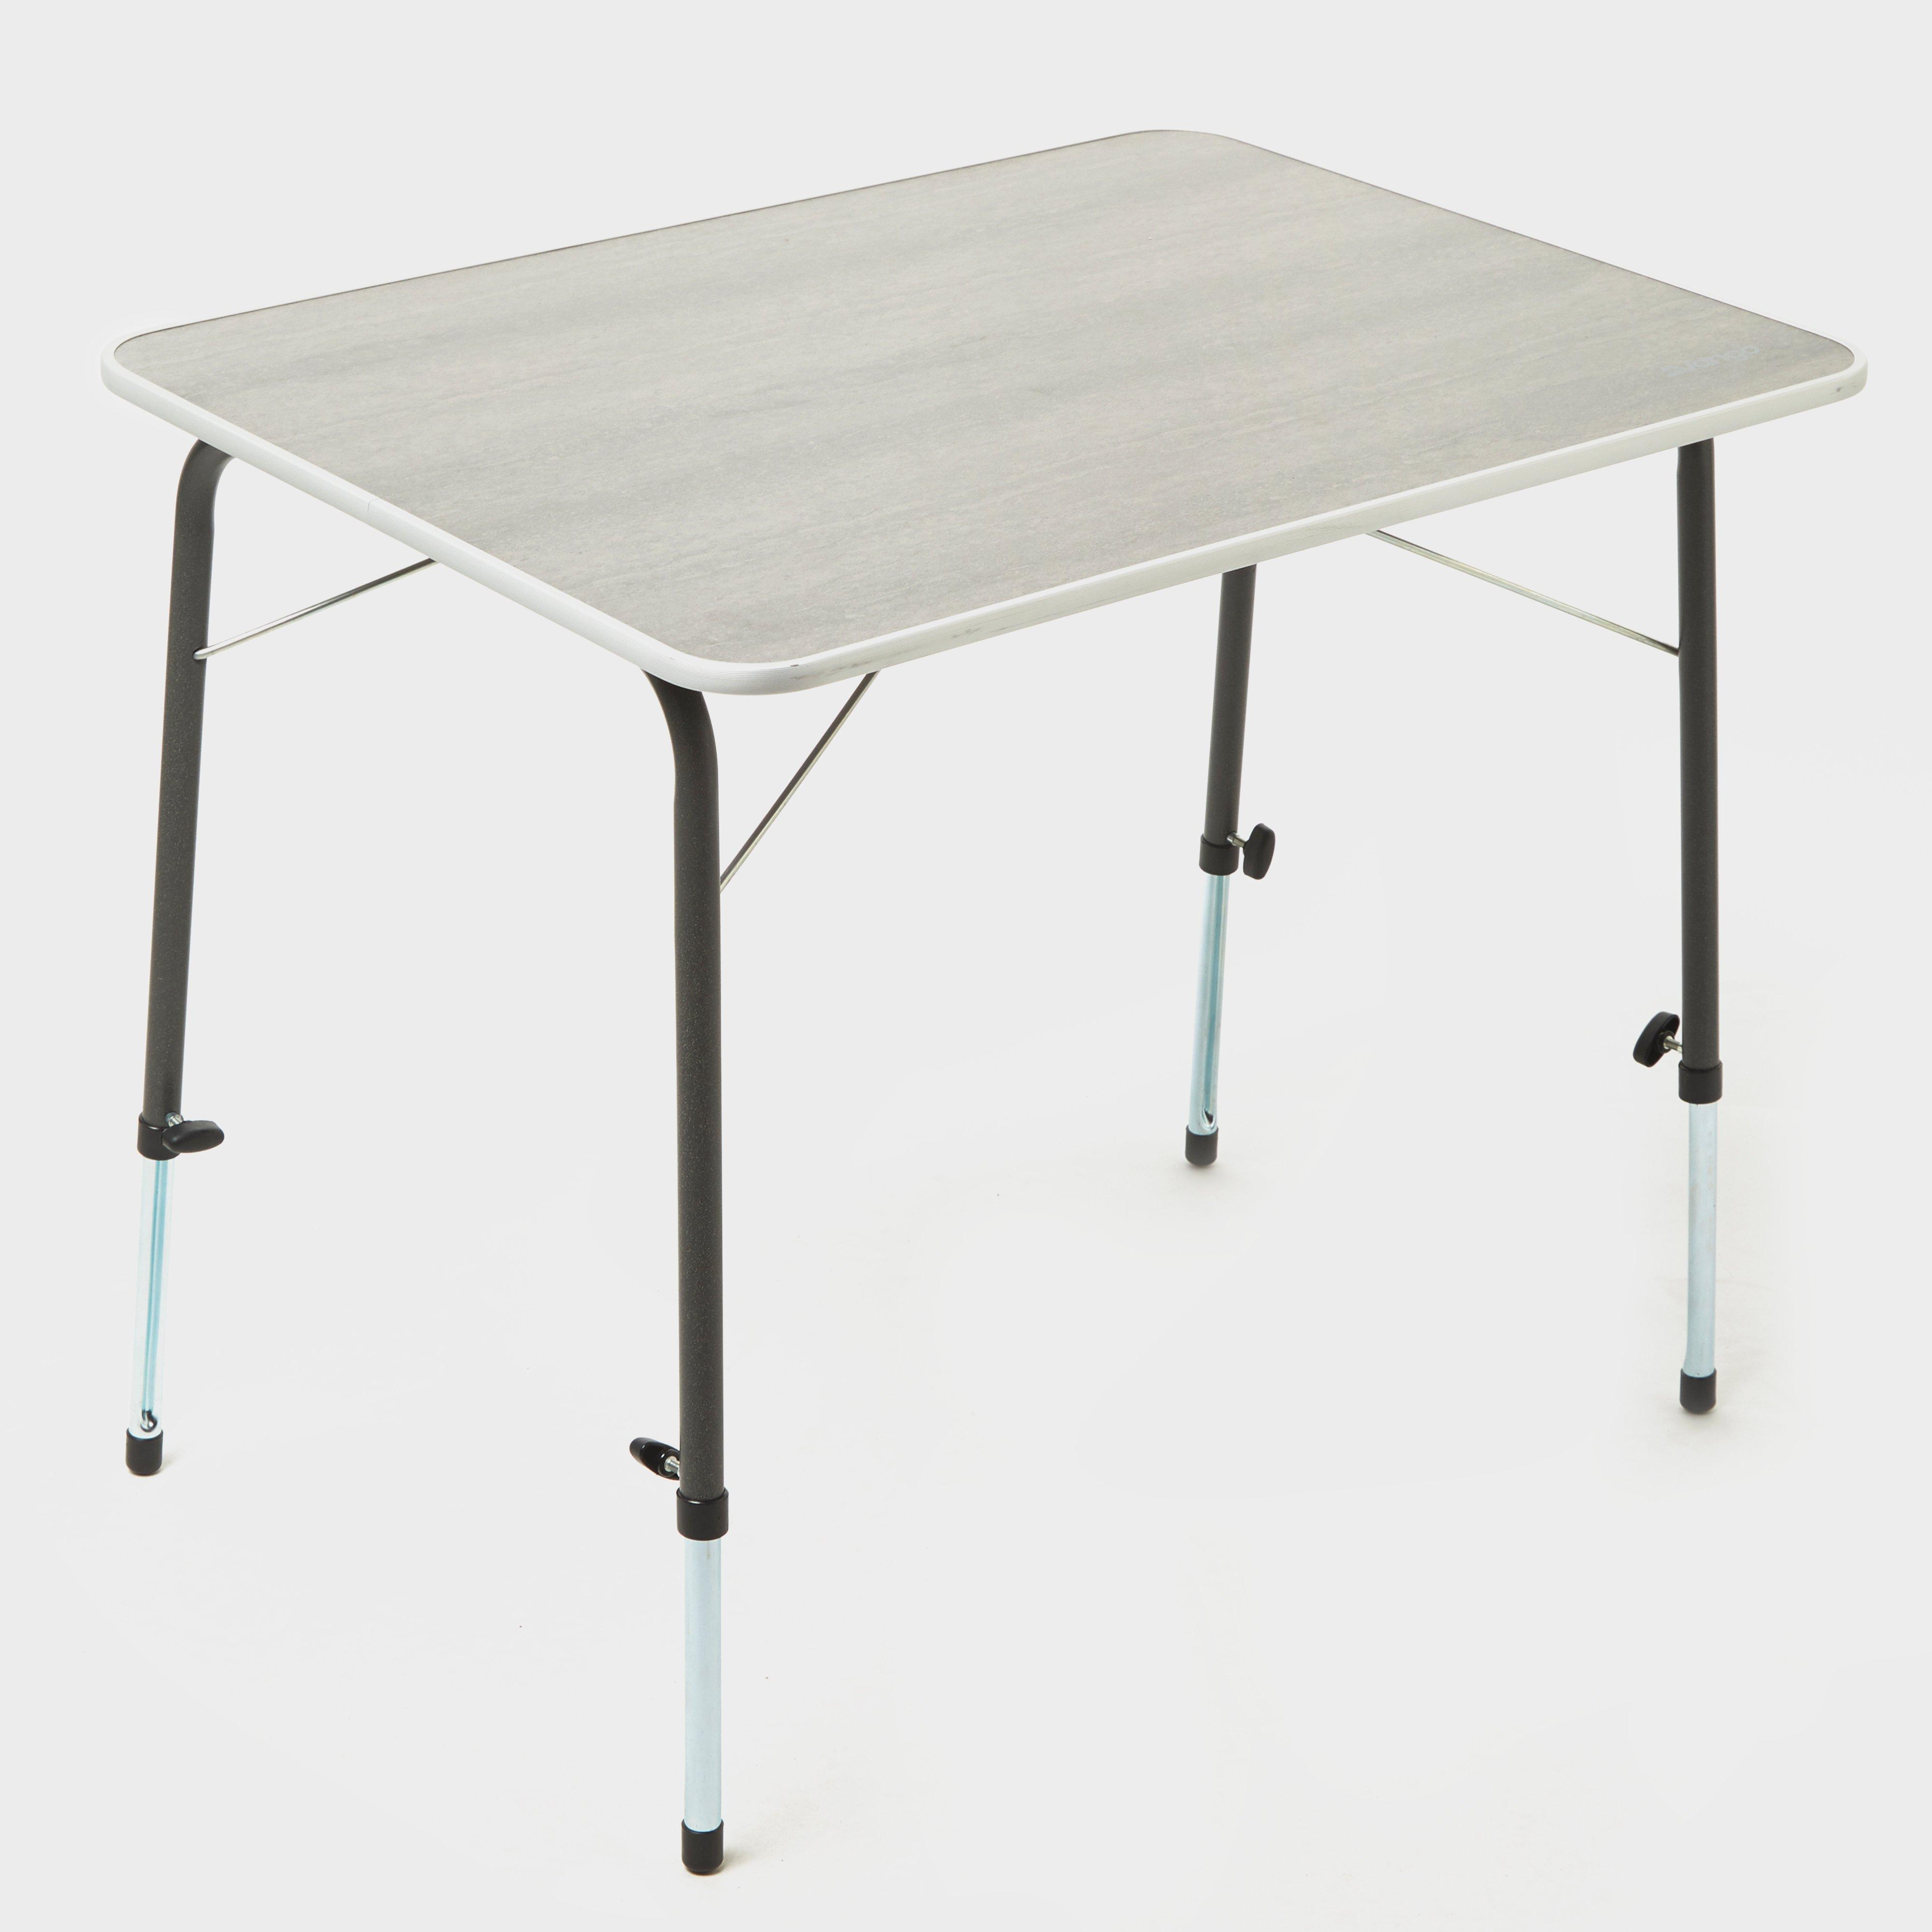 Vango Birch Camping Table - White, White